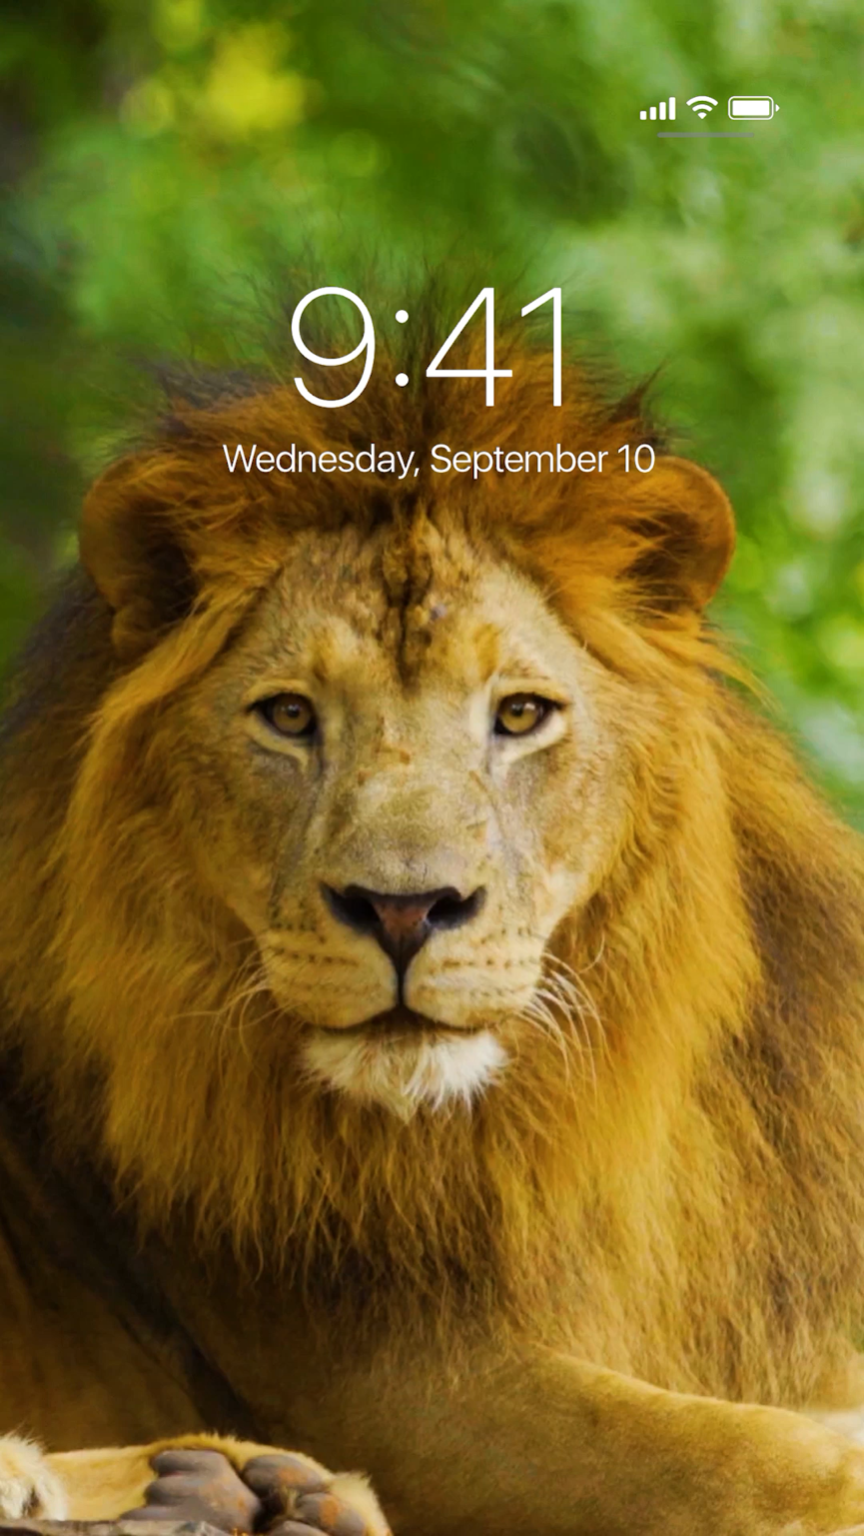 Incredible Live Wallpapers - Masai Lion , HD Wallpaper & Backgrounds